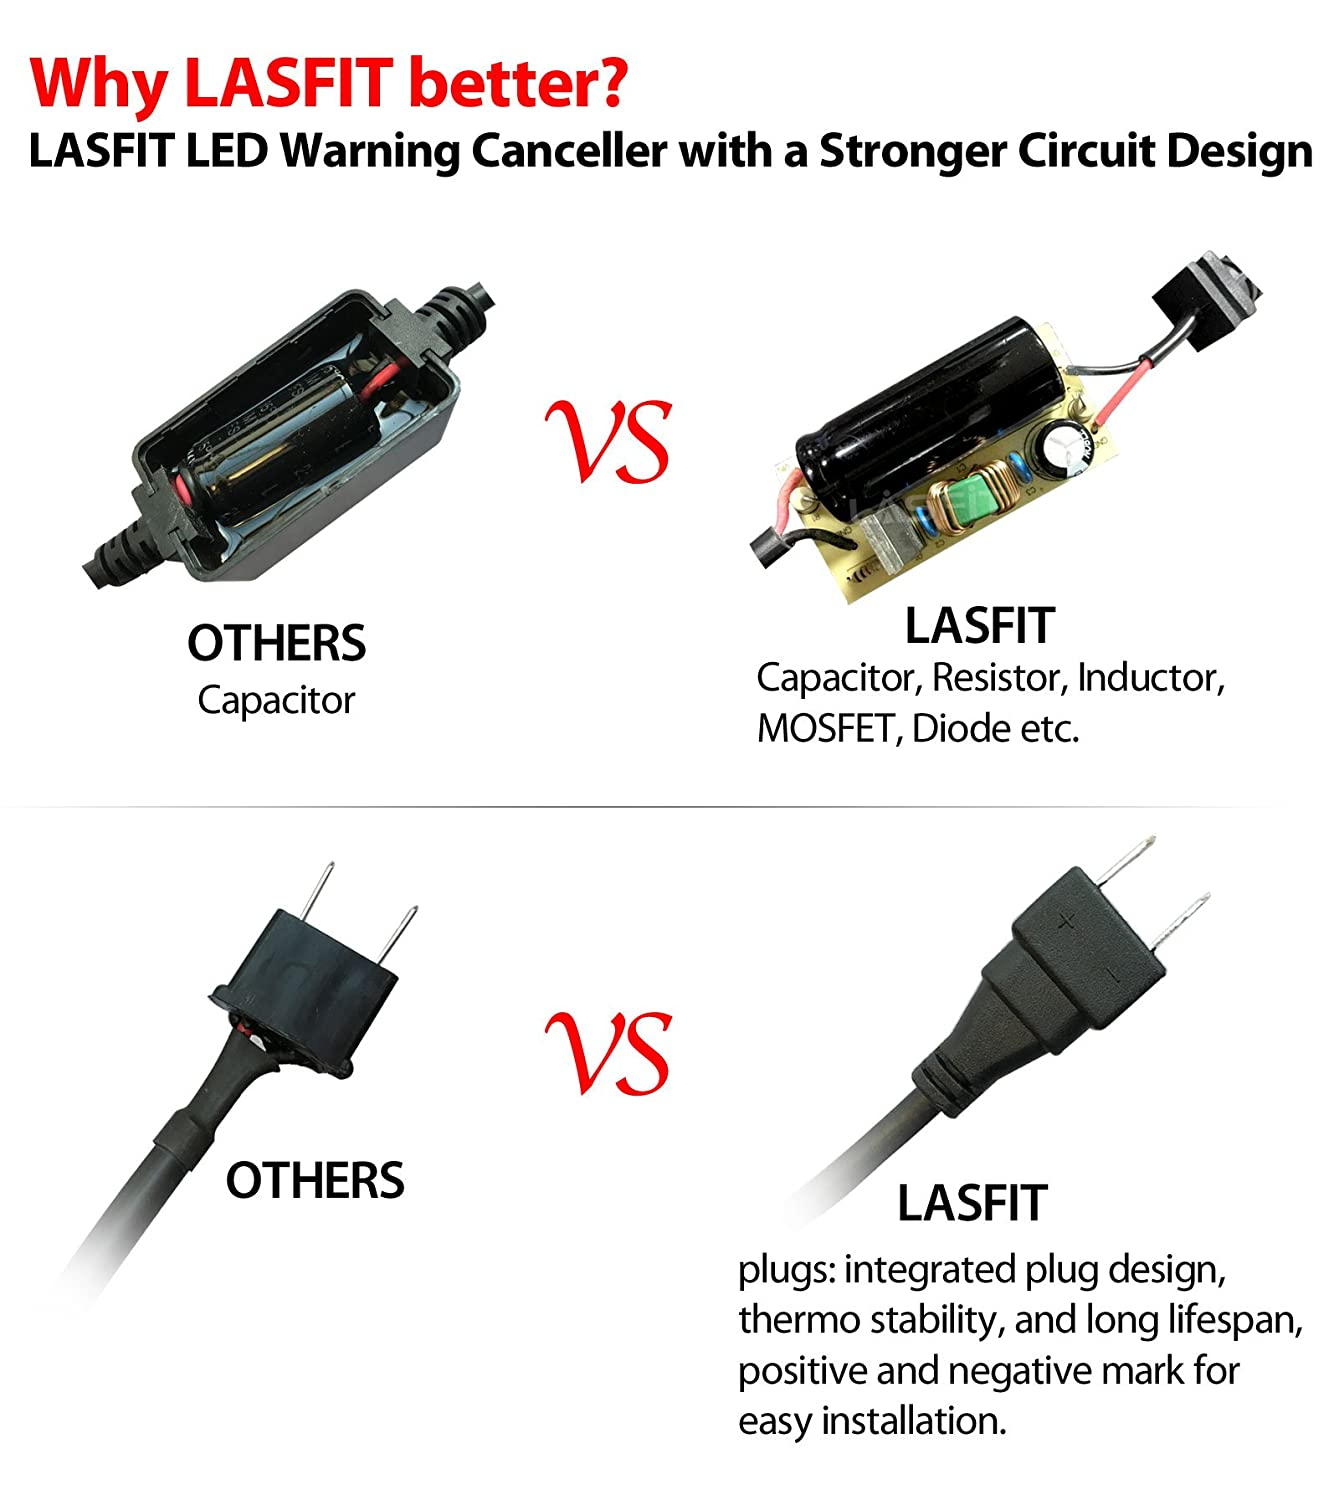 Lasfit Led Kit Computer Warning Canceller Anti Flicker Electronic Circuit Design Decoders 1 Pair H7 Automotive